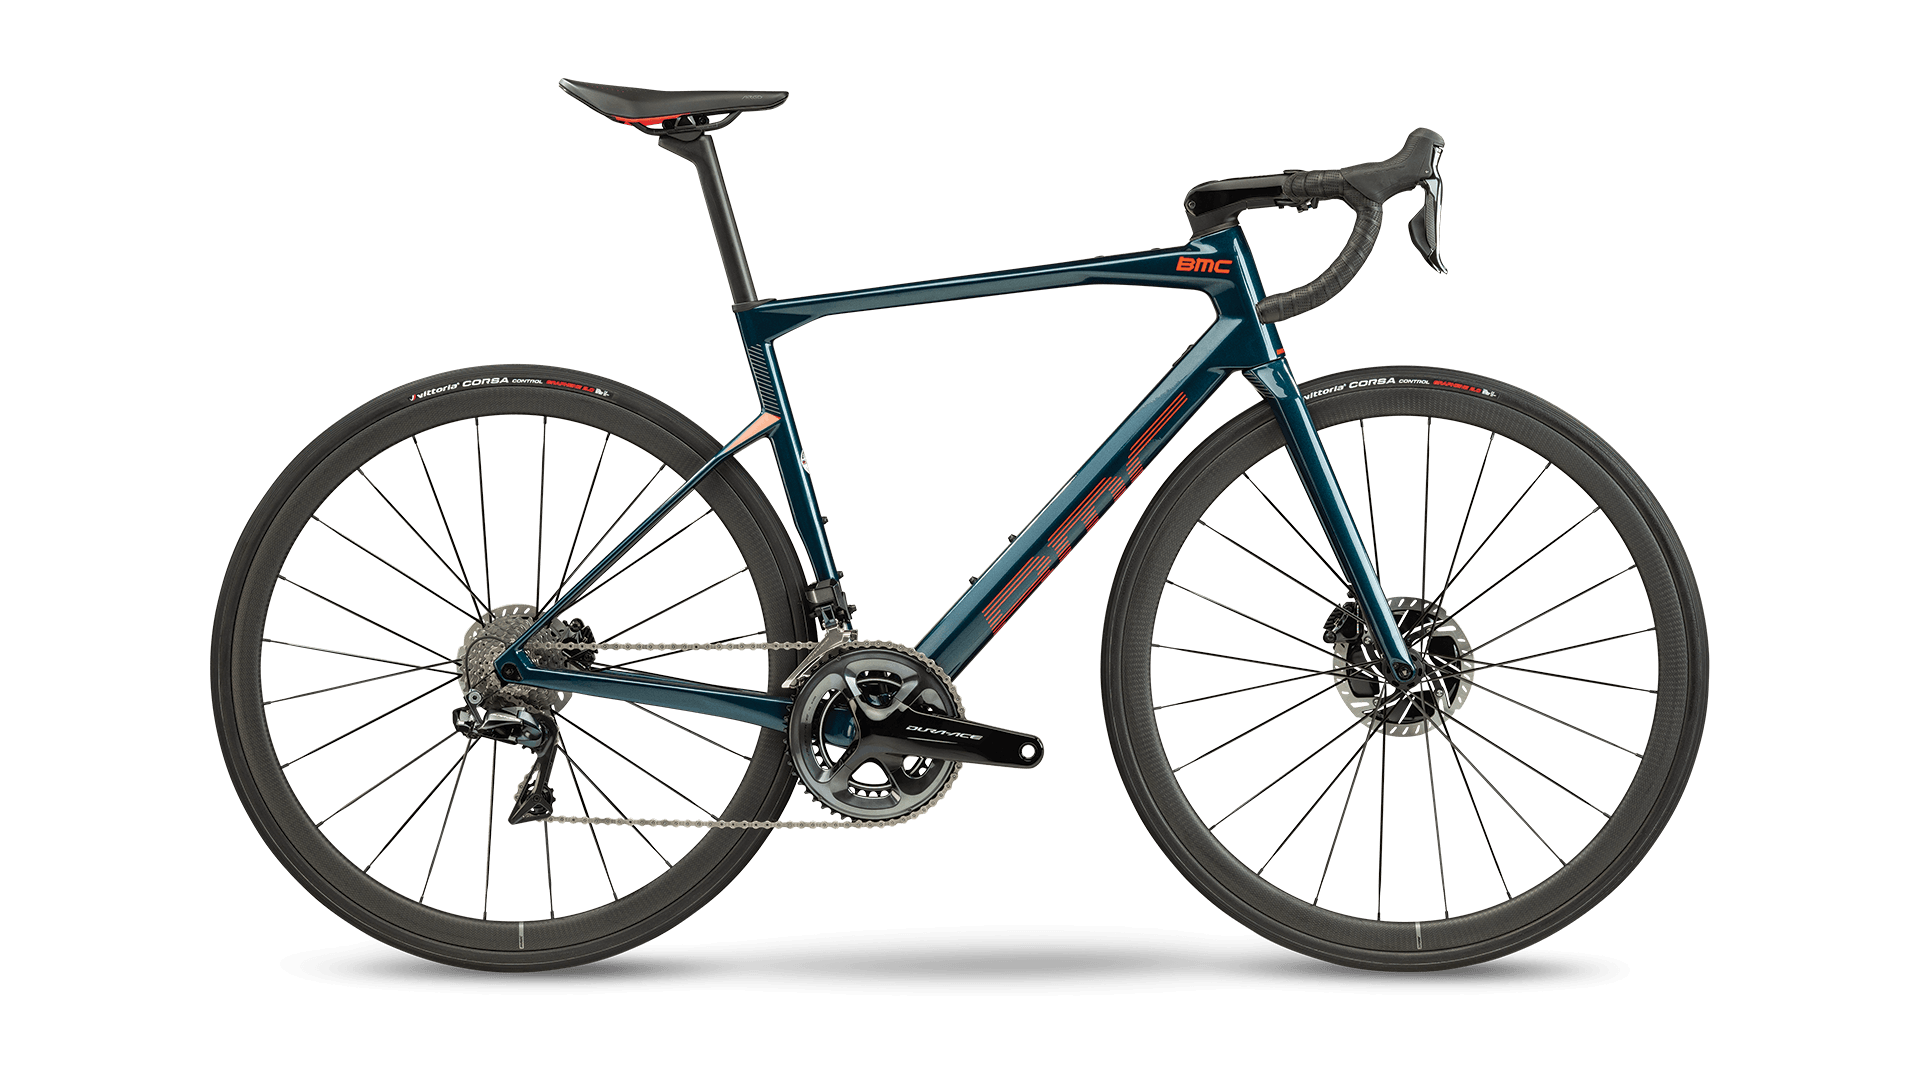 Bicicleta de Ruta Roadmachine 01 Two - BMC - BMC Colombia